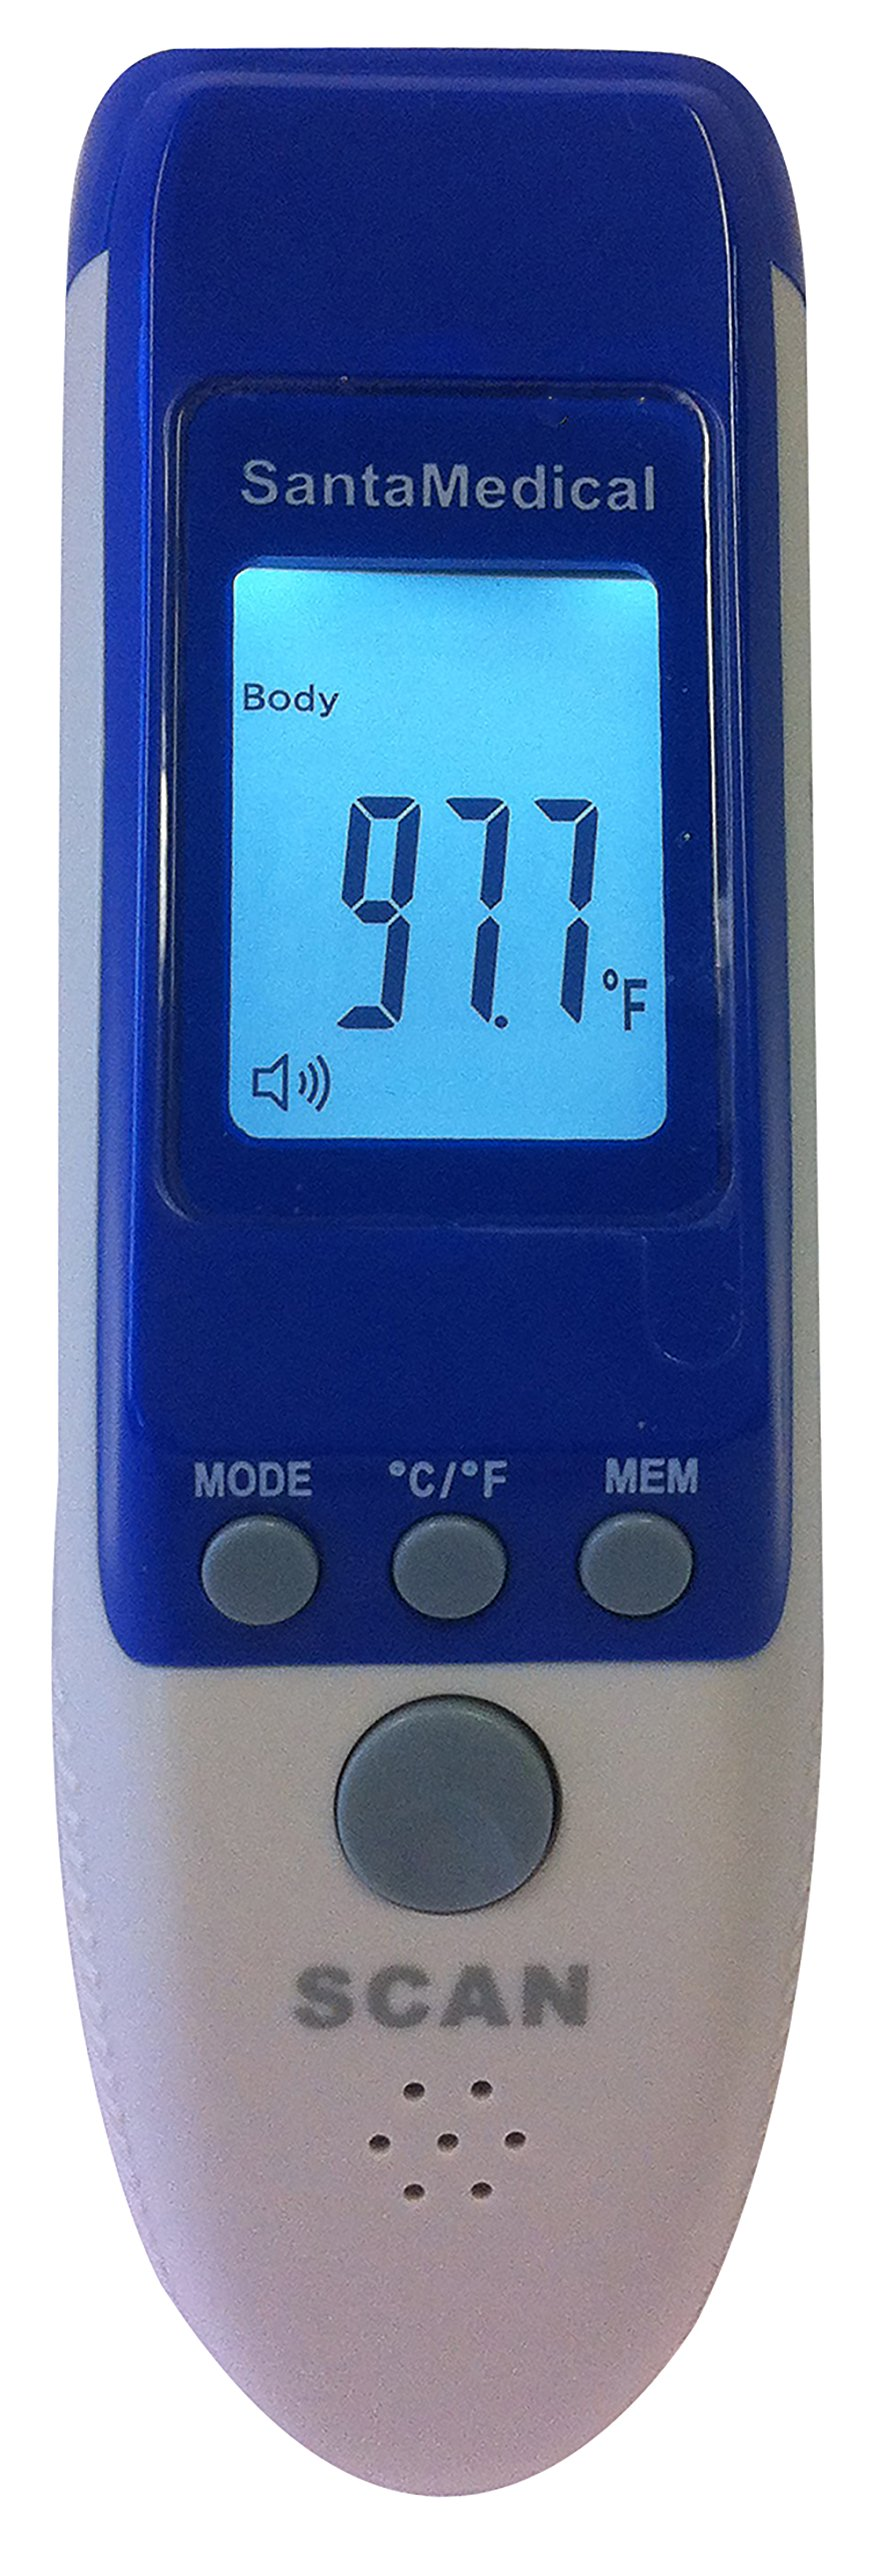 2 in 1 Professional Clinical RY230 Large LCD Non-contact Infrared Thermometer - Forehead and Surface